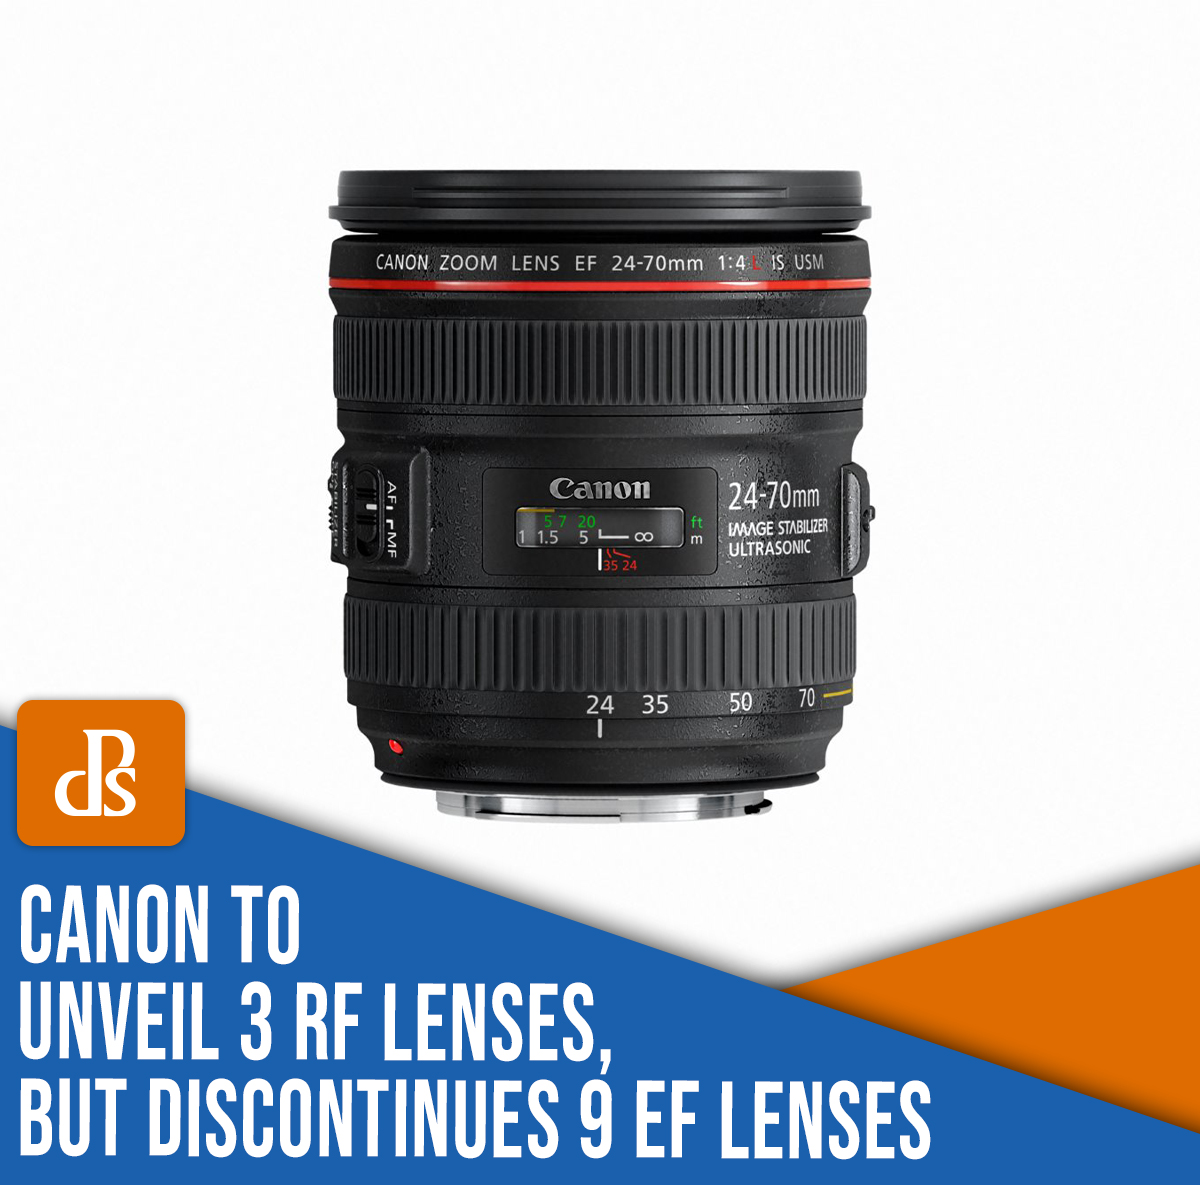 Canon to unveil 3 RF lenses, but discontinues 9 EF lenses